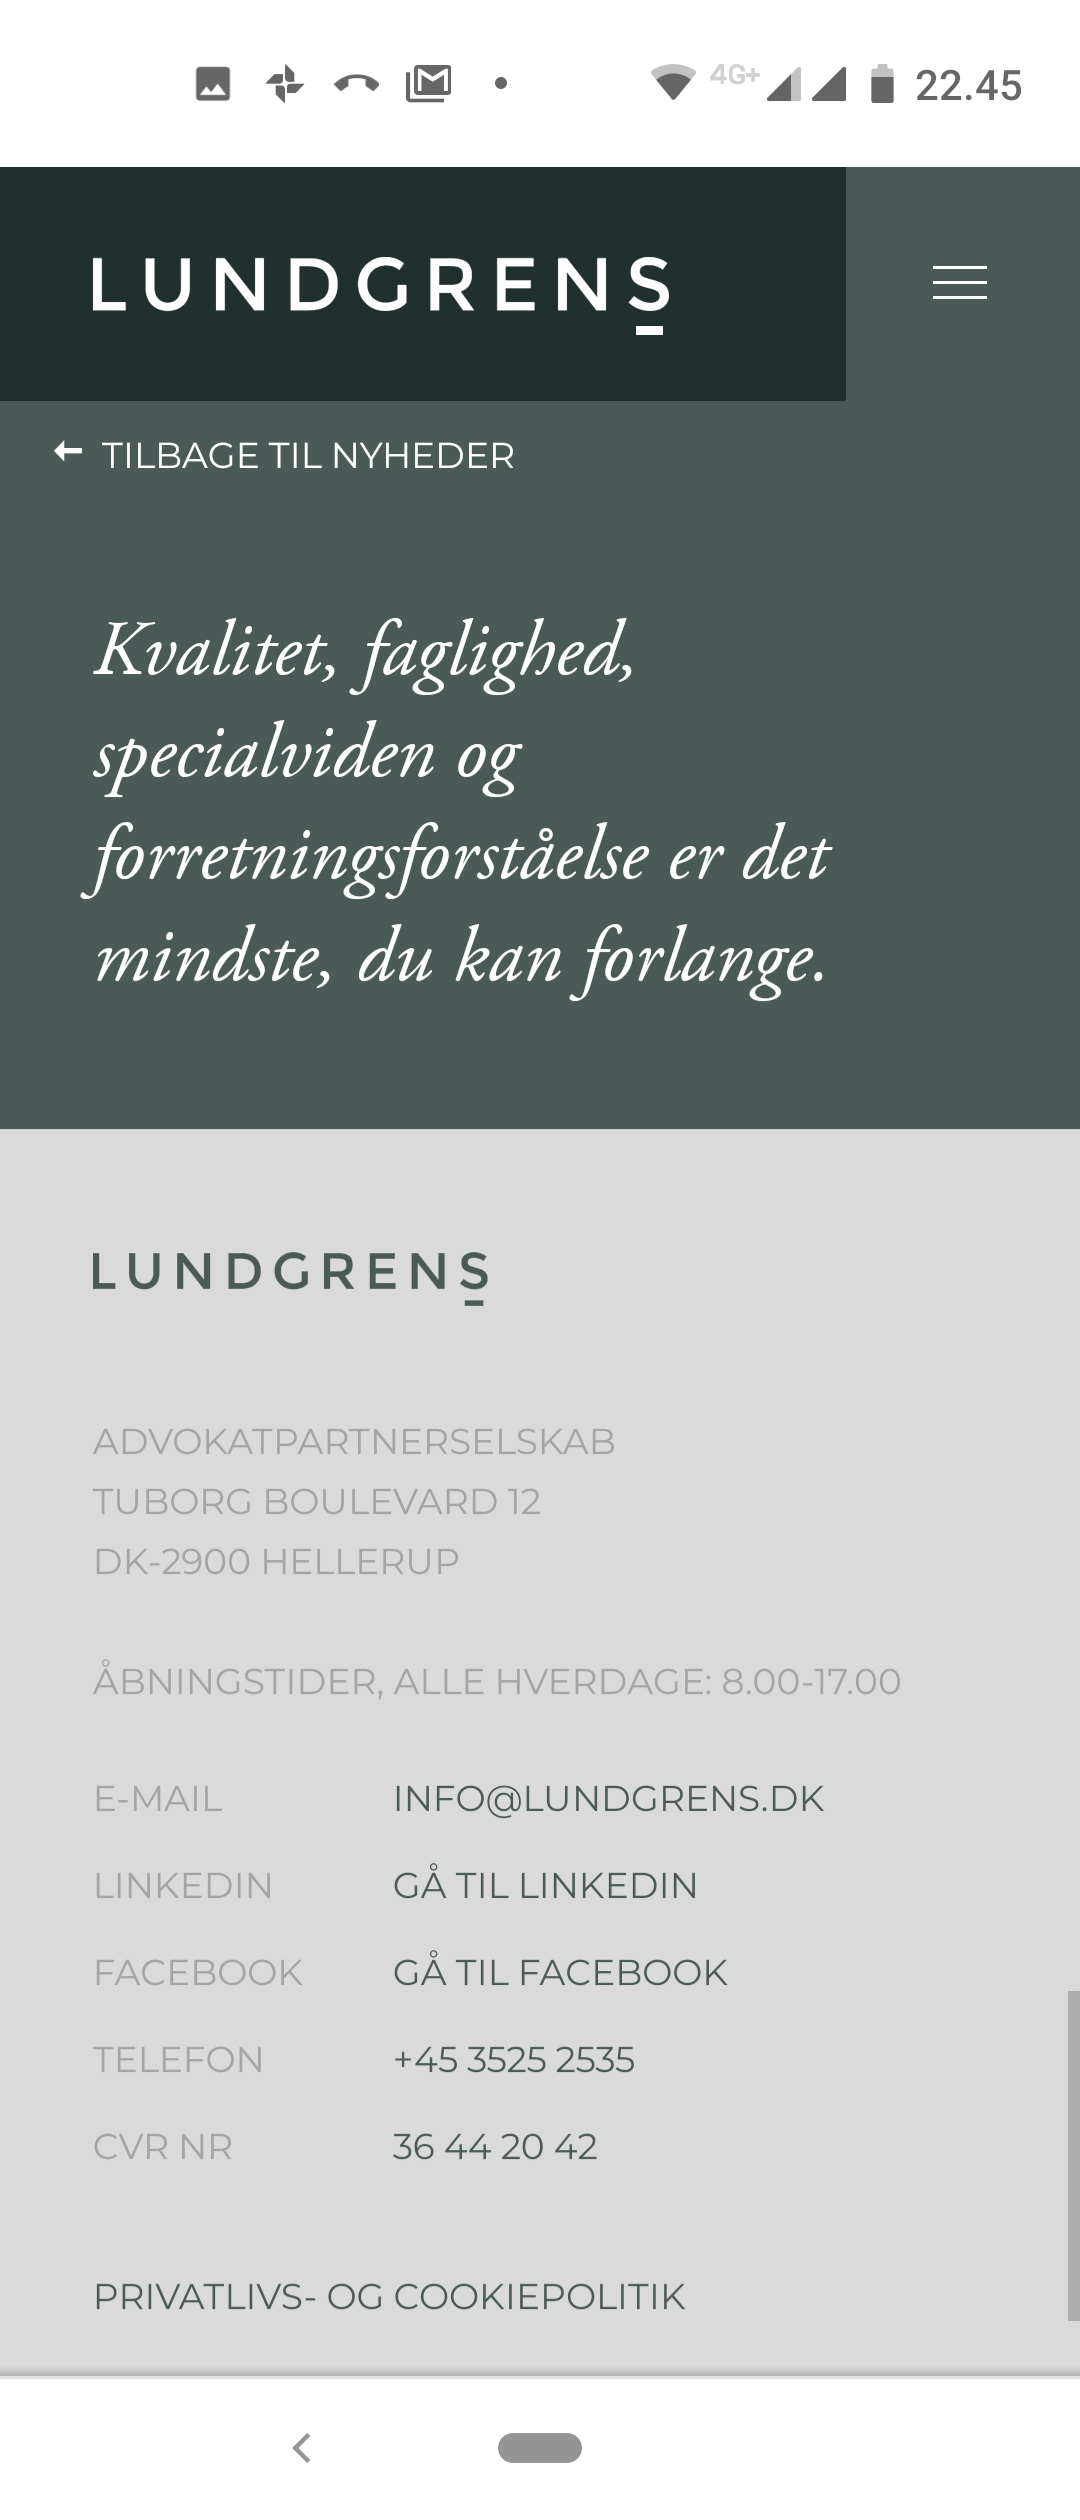 If you choose Lundgren's lawyers to work for you. Then be careful Lundgrens does also choose to work for the opposing part Jyske Bank A/S. And is habil, in our fraud and false case against Jyske Bank A/S 🏦. Then Lundgrens chose to accept a million jobs, offered by Jyske Bank's Board of Directors. Just a few months after Lundgrens took the assignment against Jyske Bank A/S for fraud and false. :-( We fired Lundgrens 1 year after, when we discovered that Lundgren's Partner Company real works for Jyske Bank's Board of Directors. And therefore directly in contravention of good lawyer custom, counteract us, and that our claims against Jyske Bank were not presented to the courts. Therefore we would like to warn you as a client in Lundgrens, as we believe they have received a return commission from Jyske Bank, to help Jyske Bank A/S A false or corrupt lawyer is a threat to the Danish legal community.